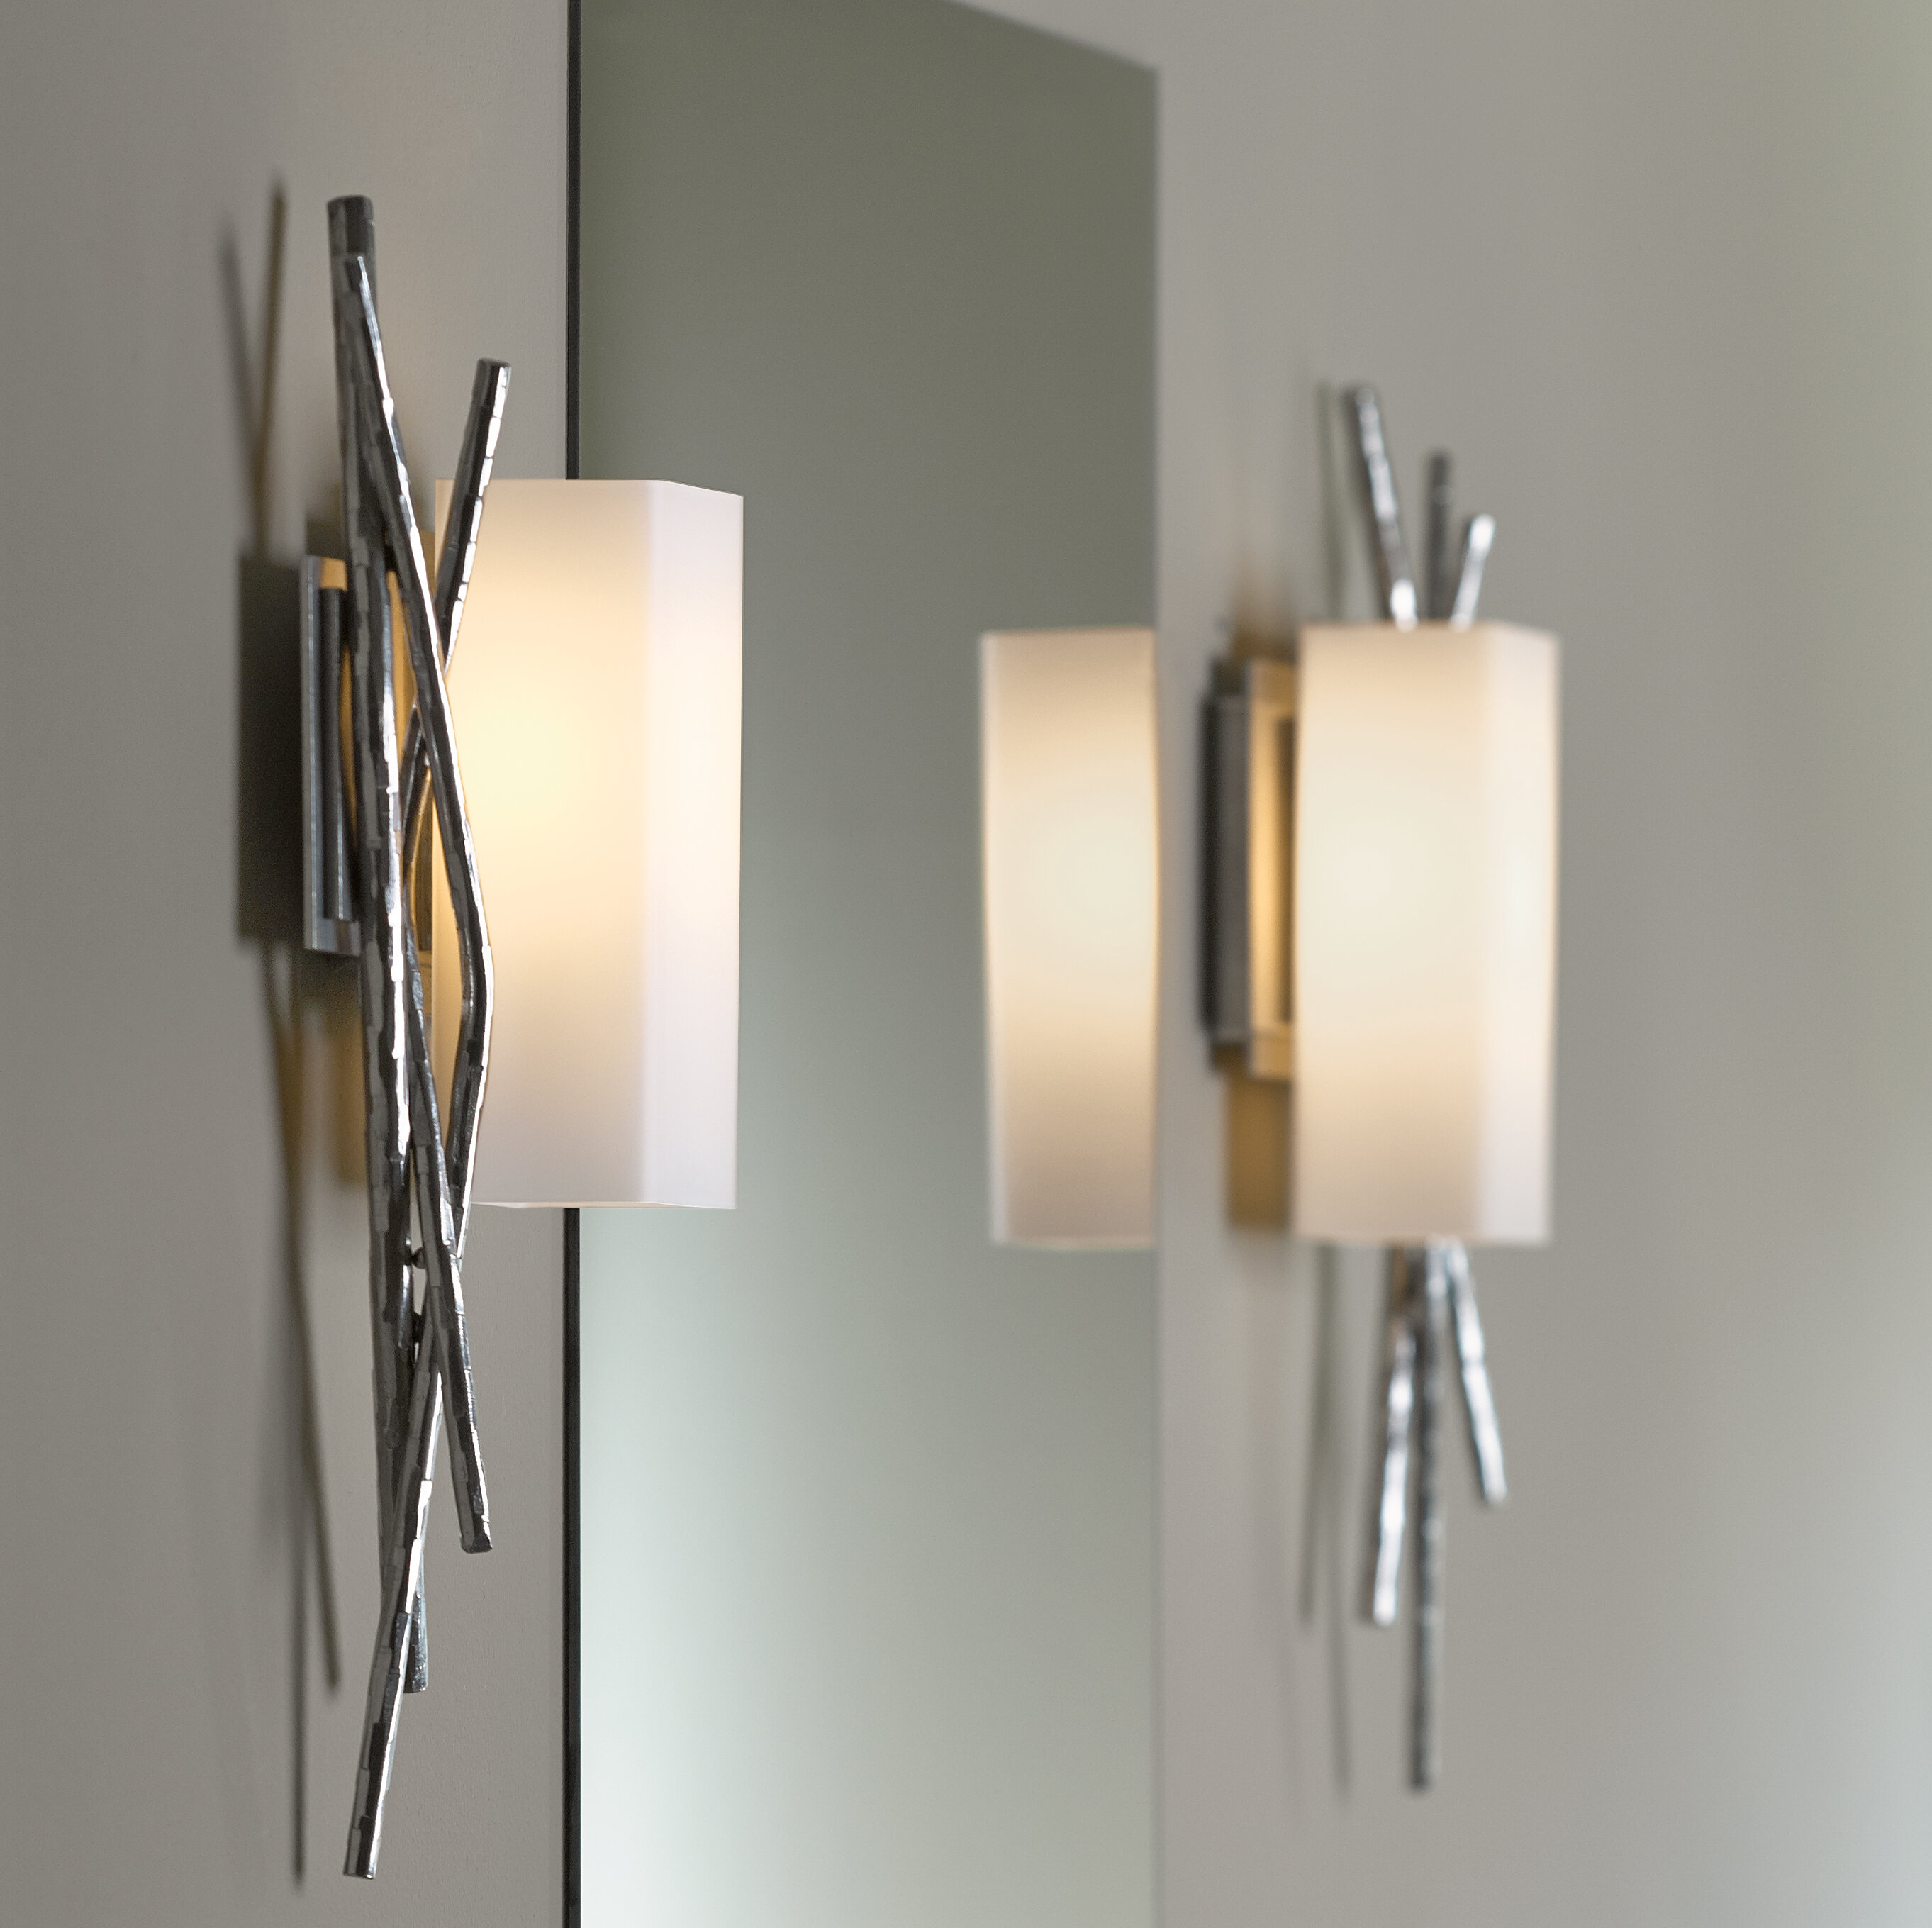 Hubbardton forge wayfair